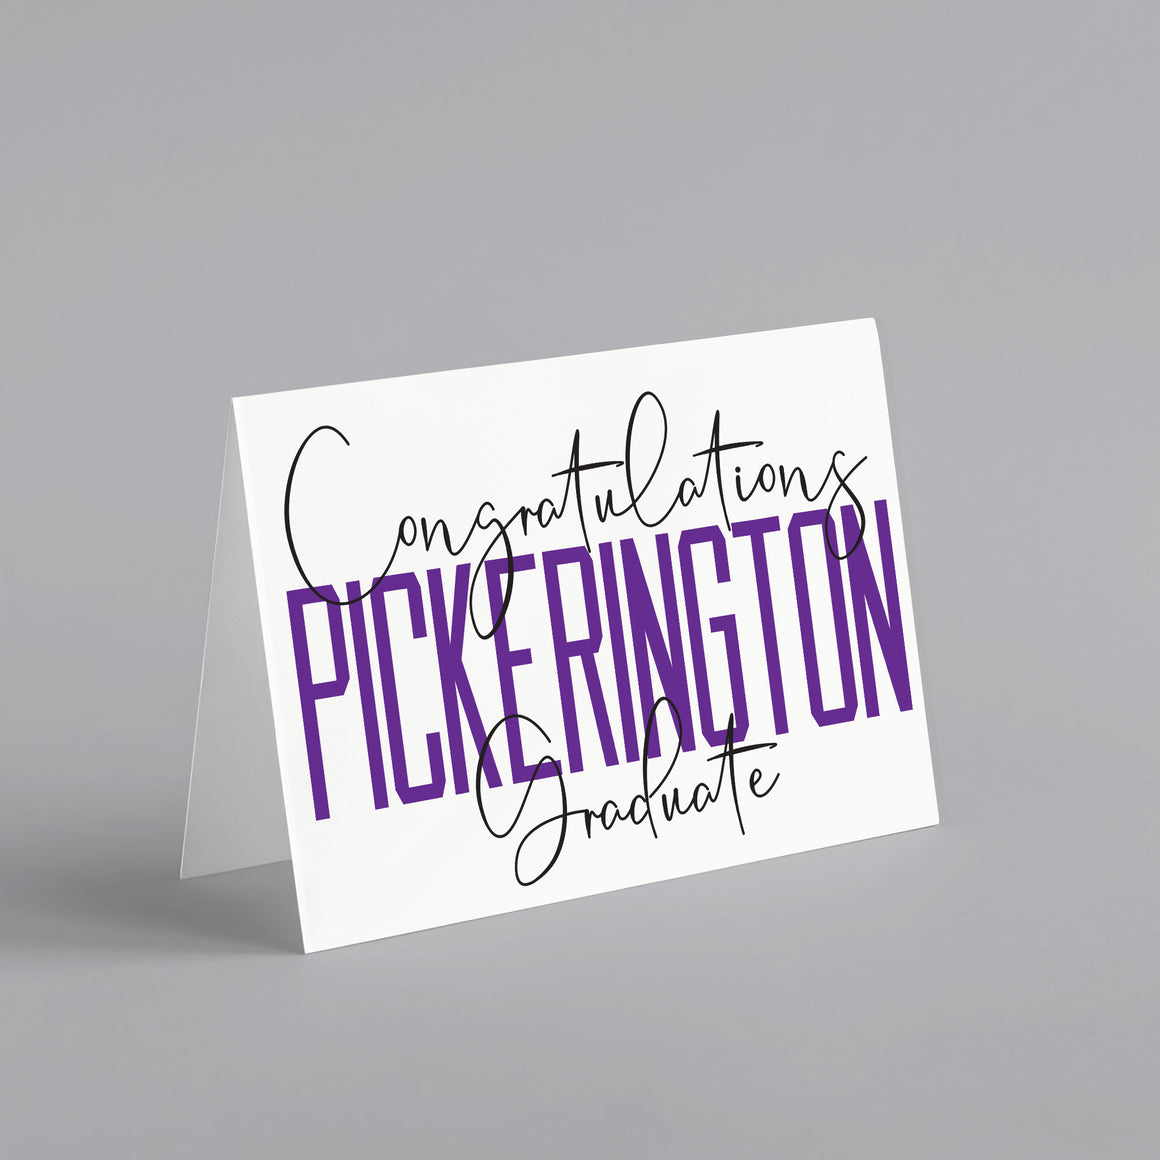 Pickerington Graduation Cards - 24 Pack